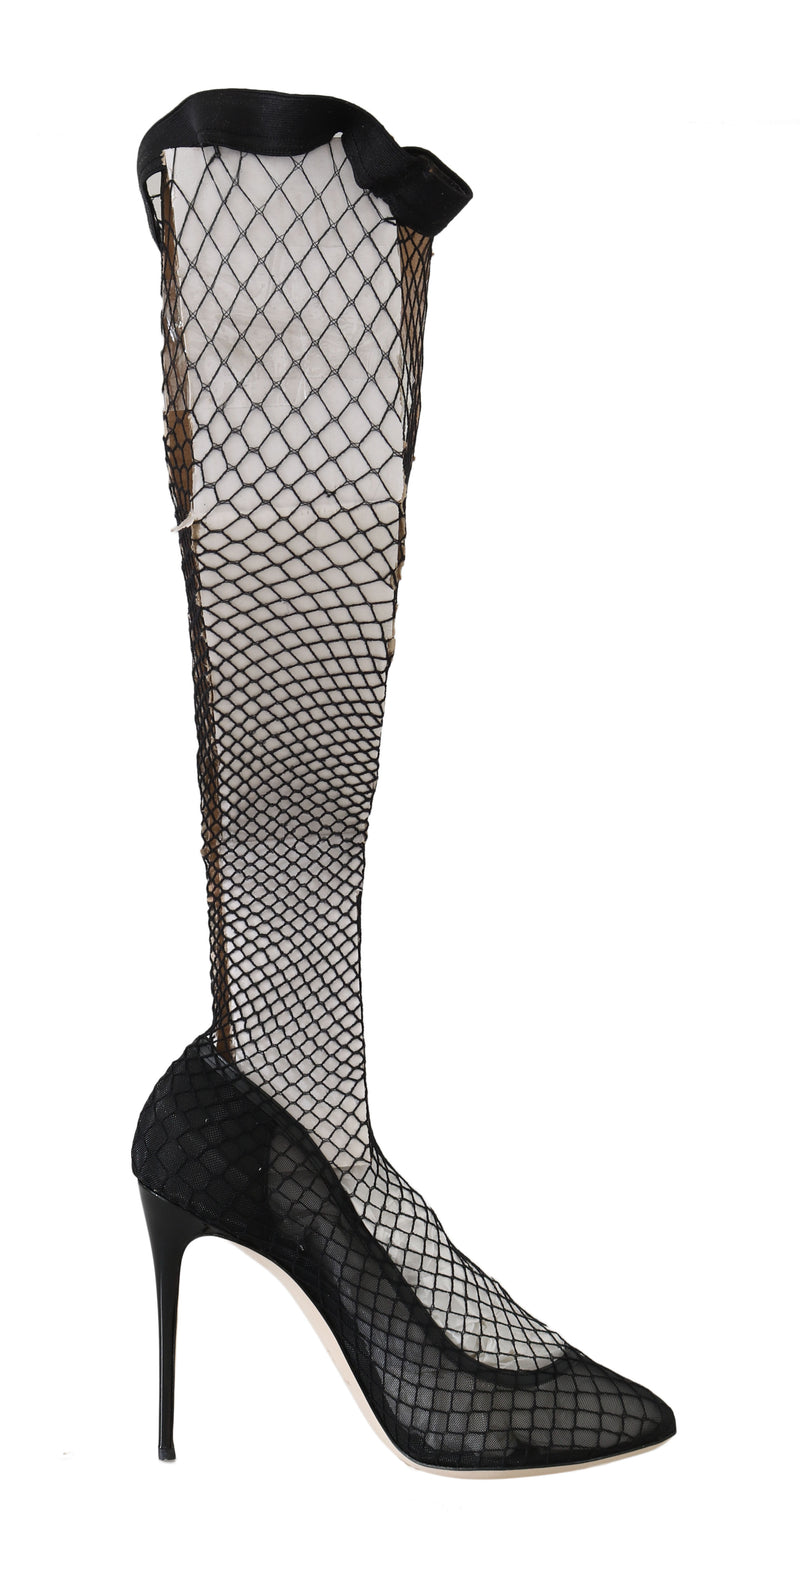 Black Netted Sock Heels Pumps